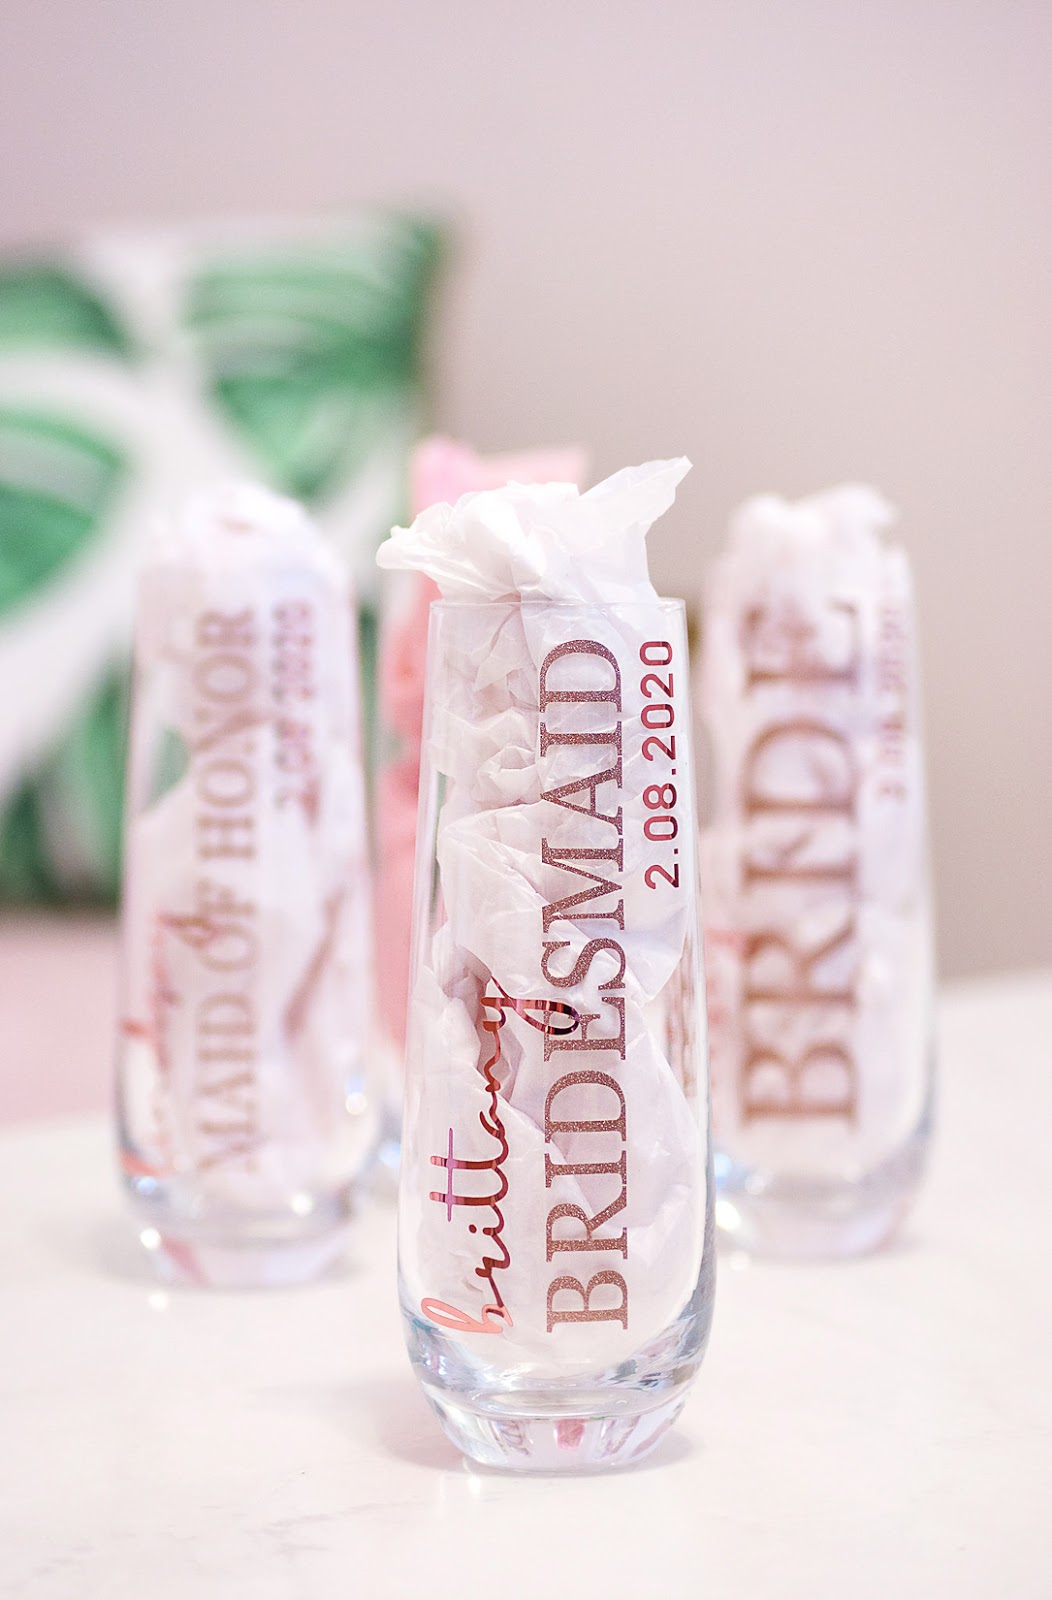 Personalized Champagne Flutes For Bridesmaids - Chasing Cinderella